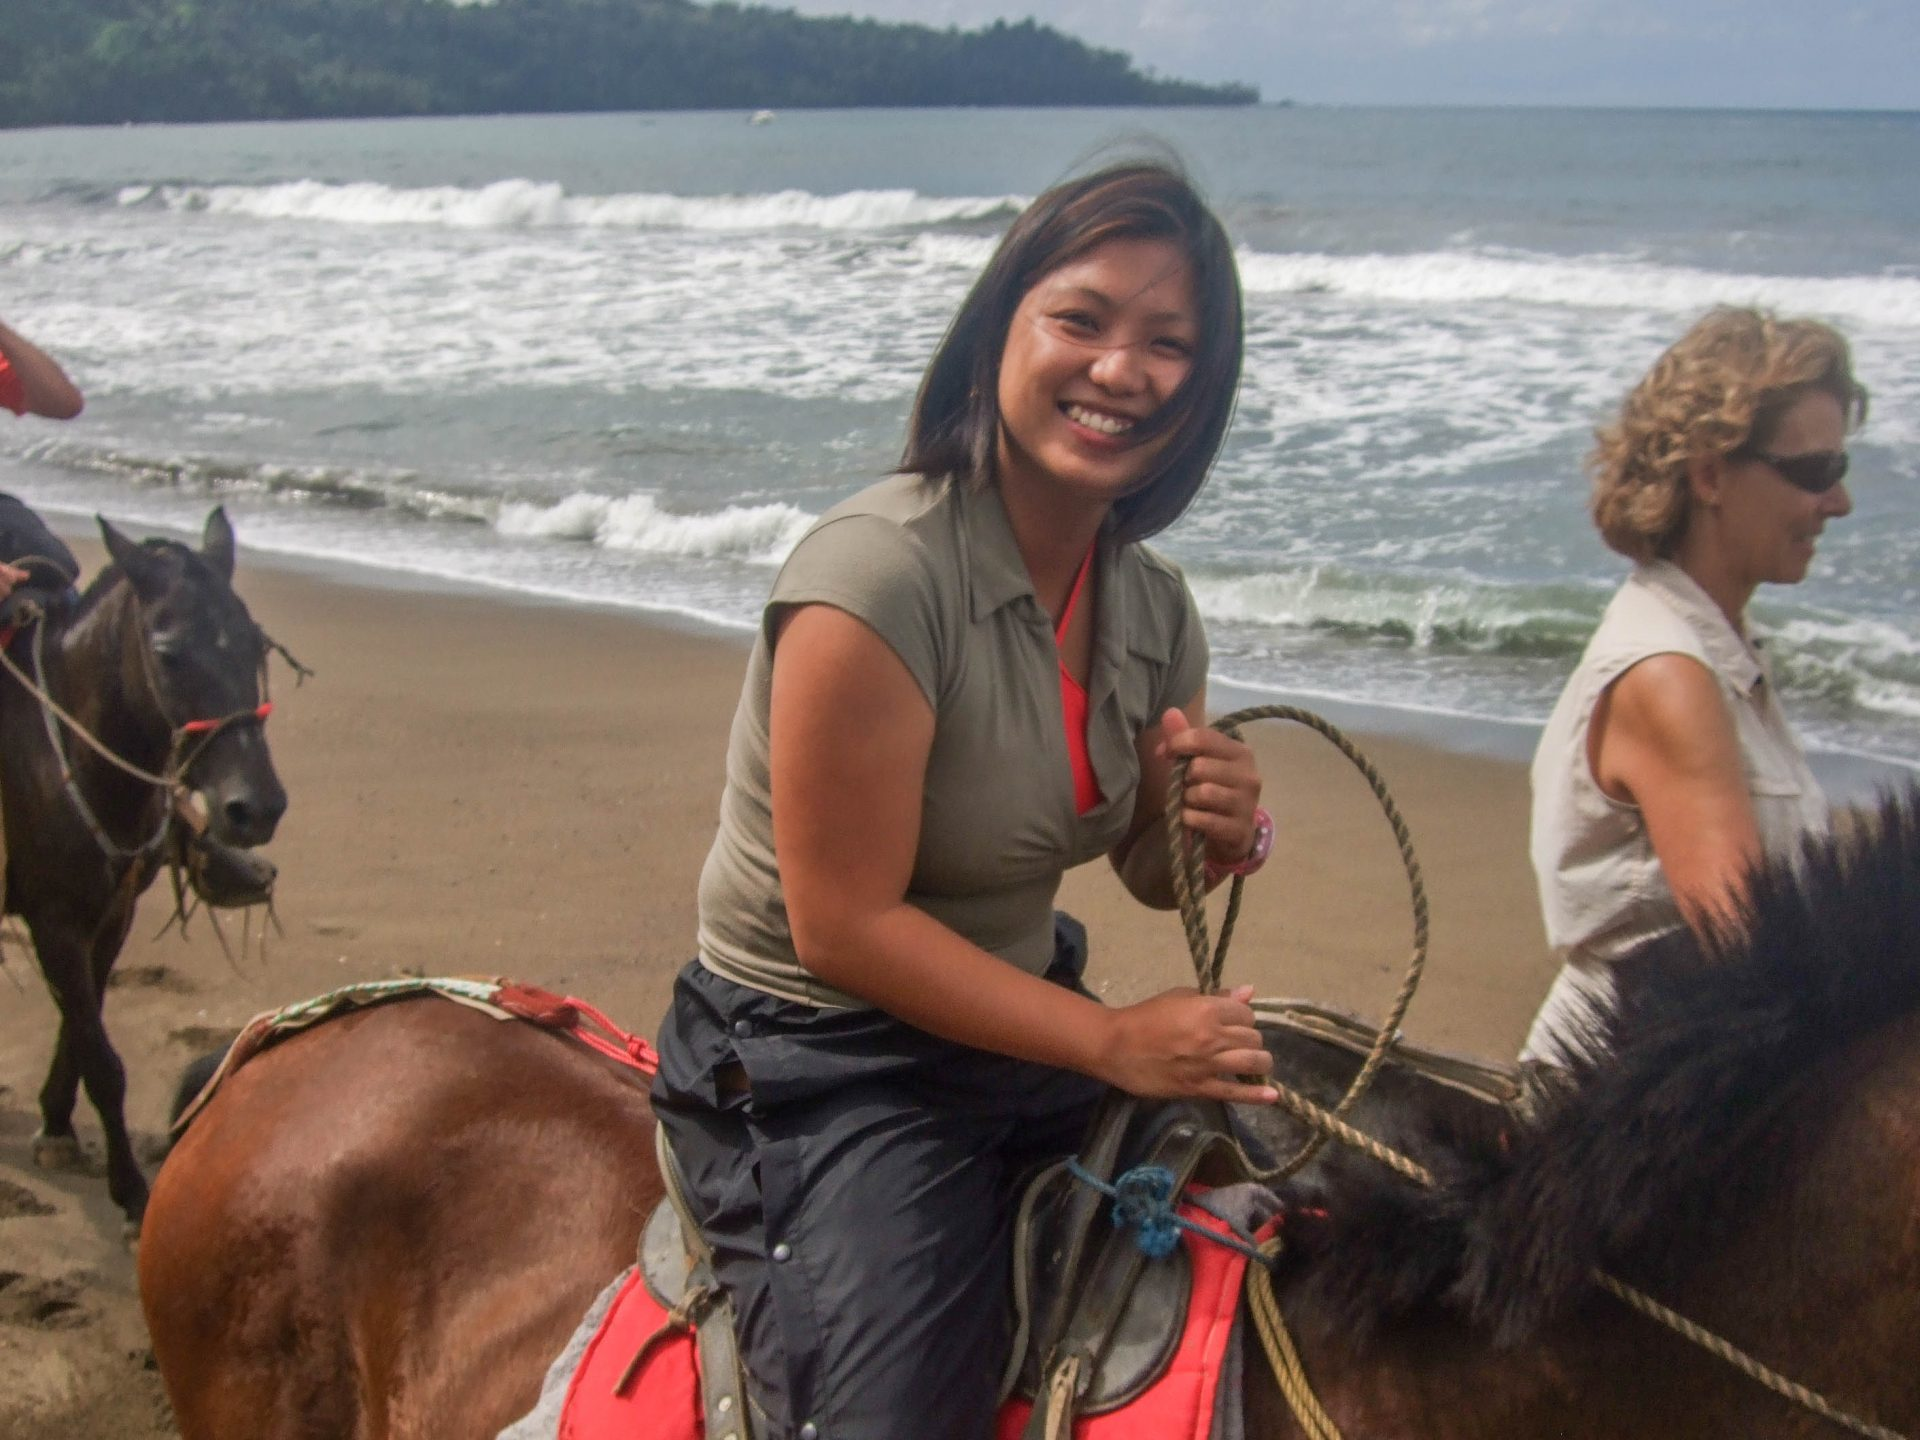 A young woman smiles at the camera as she rides a horse along the beach - finding paradise on the Osa Peninsula